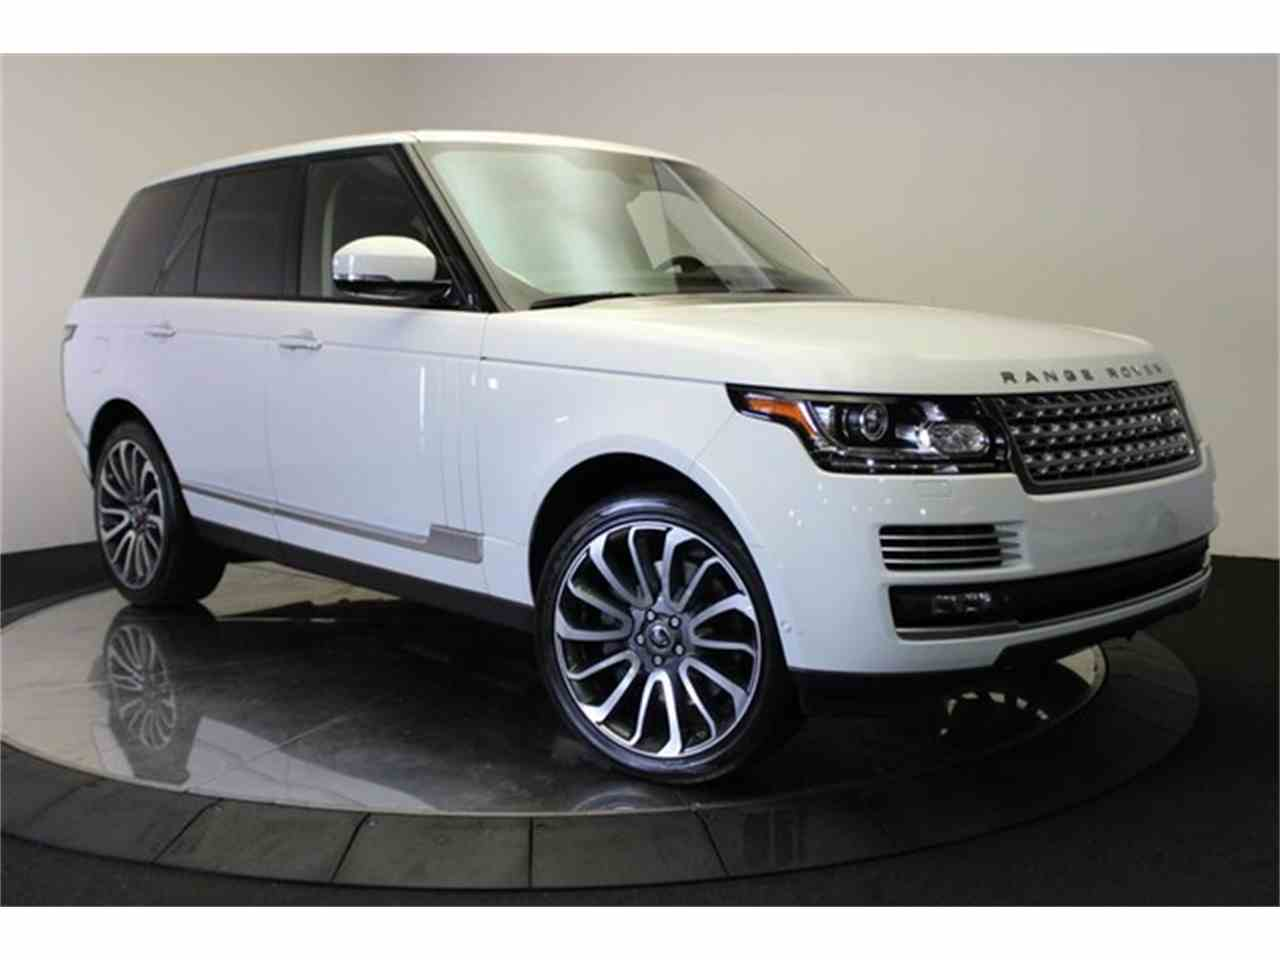 Large Picture of '13 Range Rover - $73,888.00 Offered by DC Motors - KHXU